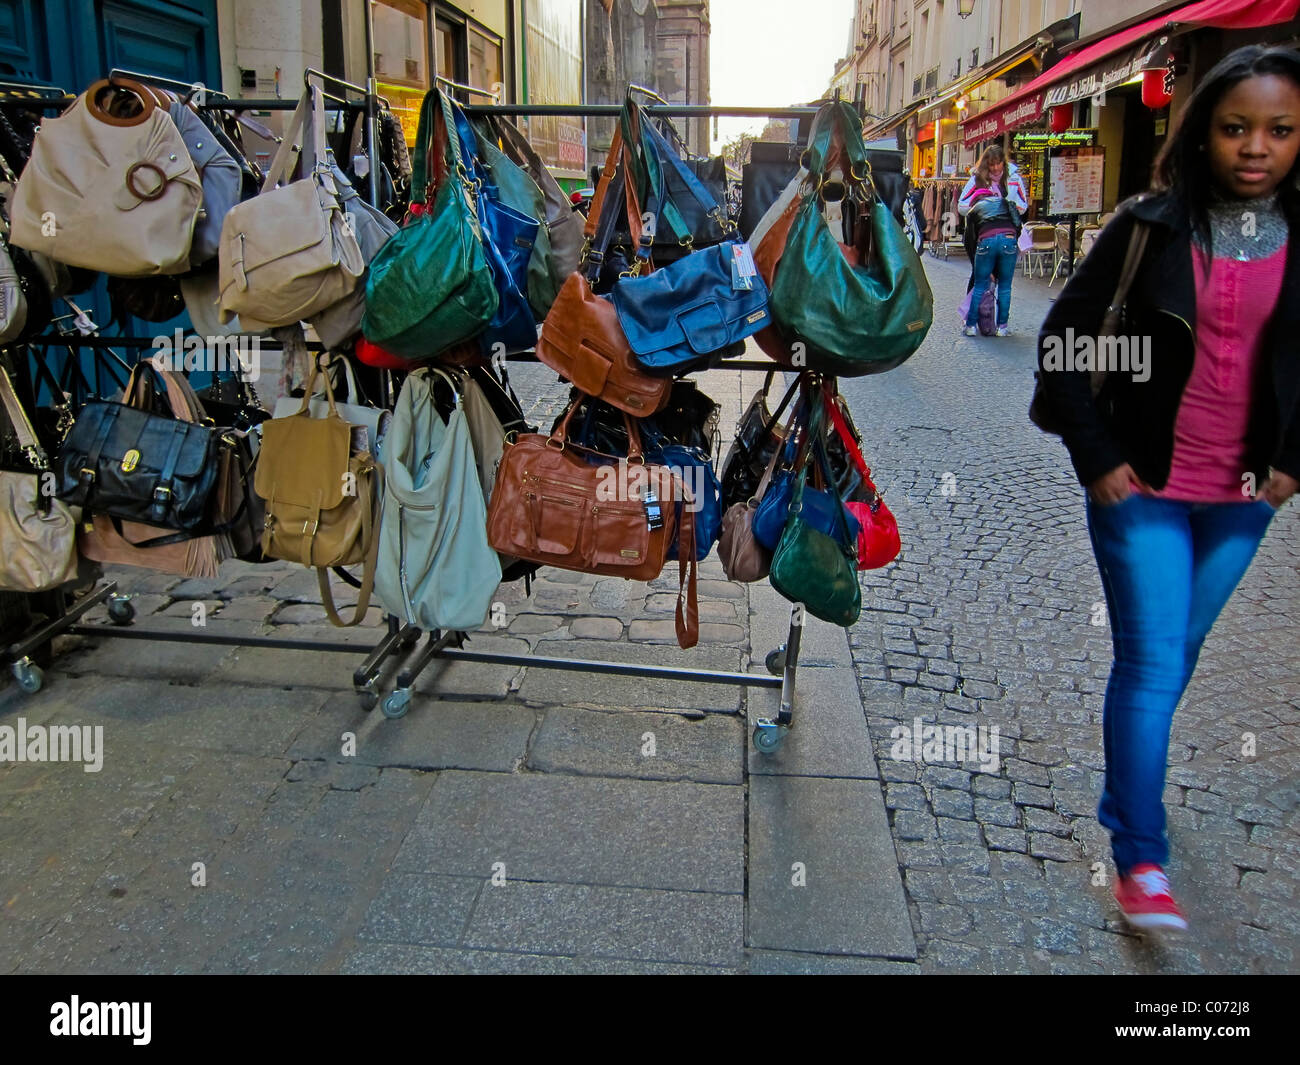 Paris, France, French Fashion Store, Display 'Rain-bow'  Hand Bags, Les Halles District - Stock Image